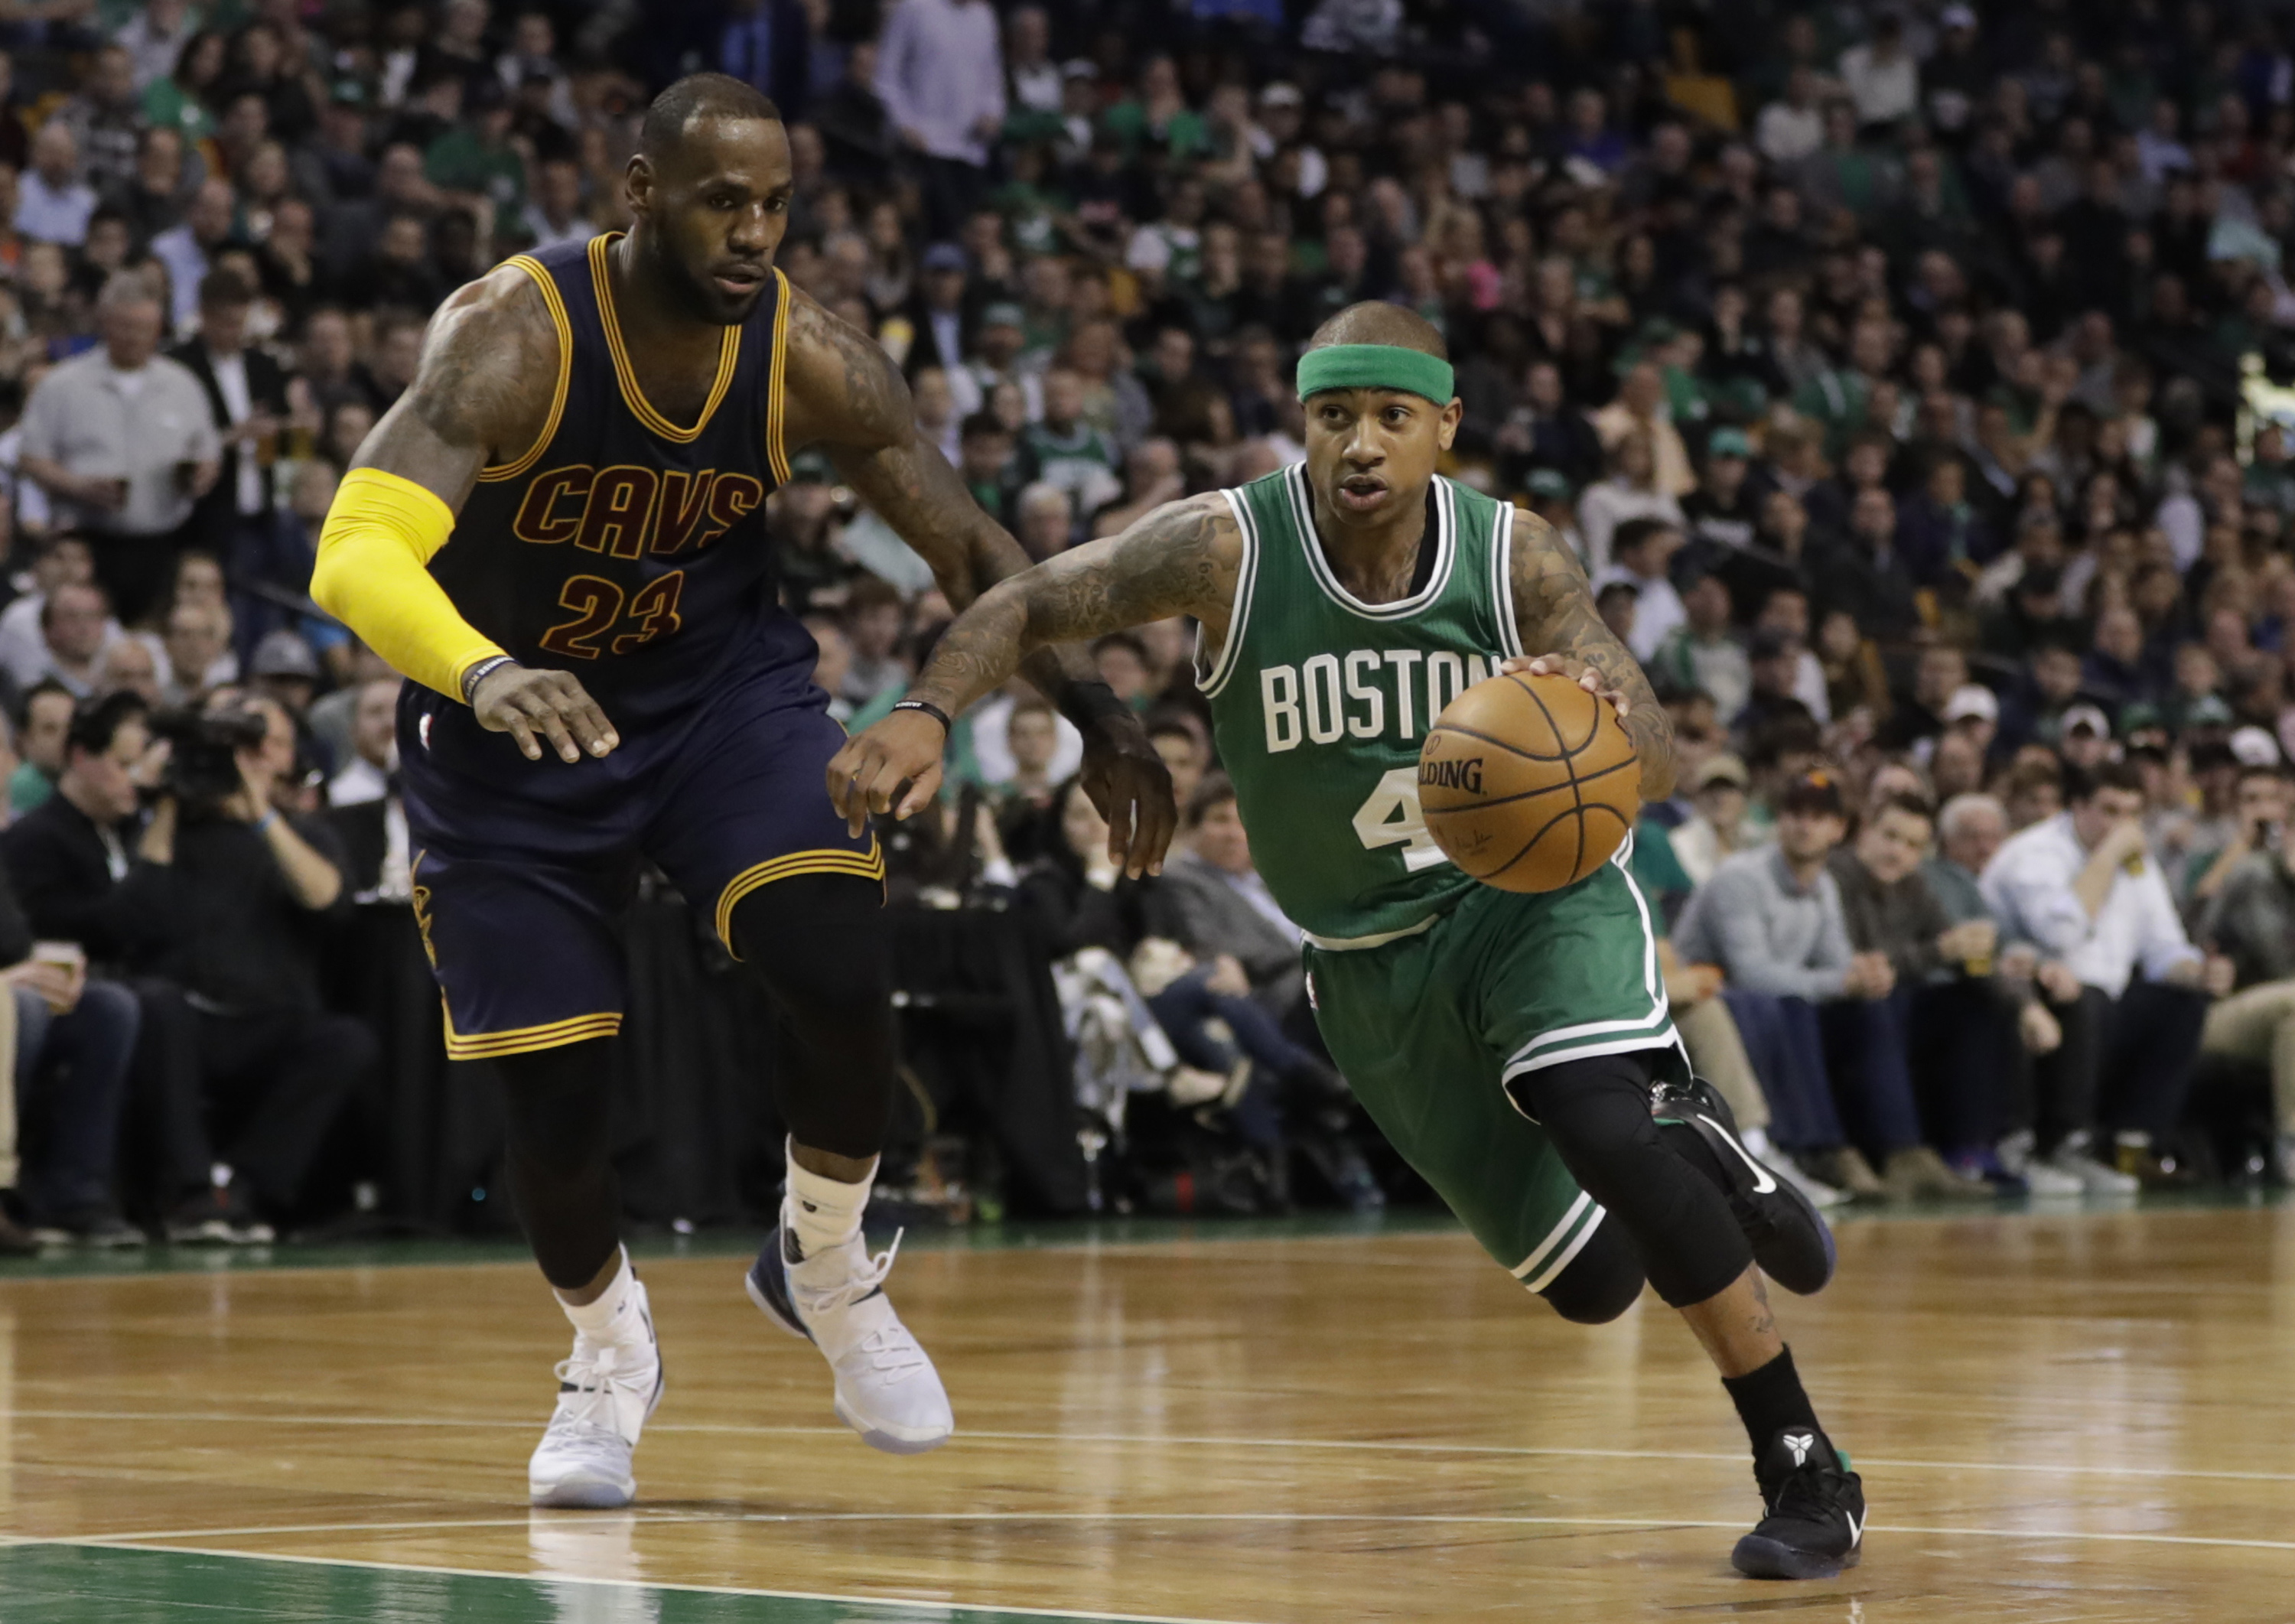 Apr 5, 2017; Boston, MA, USA; Boston Celtics guard Isaiah Thomas (4) drives the ball against Cleveland Cavaliers forward LeBron James (23) in the second half at TD Garden. The Cavaliers defeated the Celtics 114-91. Mandatory Credit: David Butler II-USA TODAY Sports